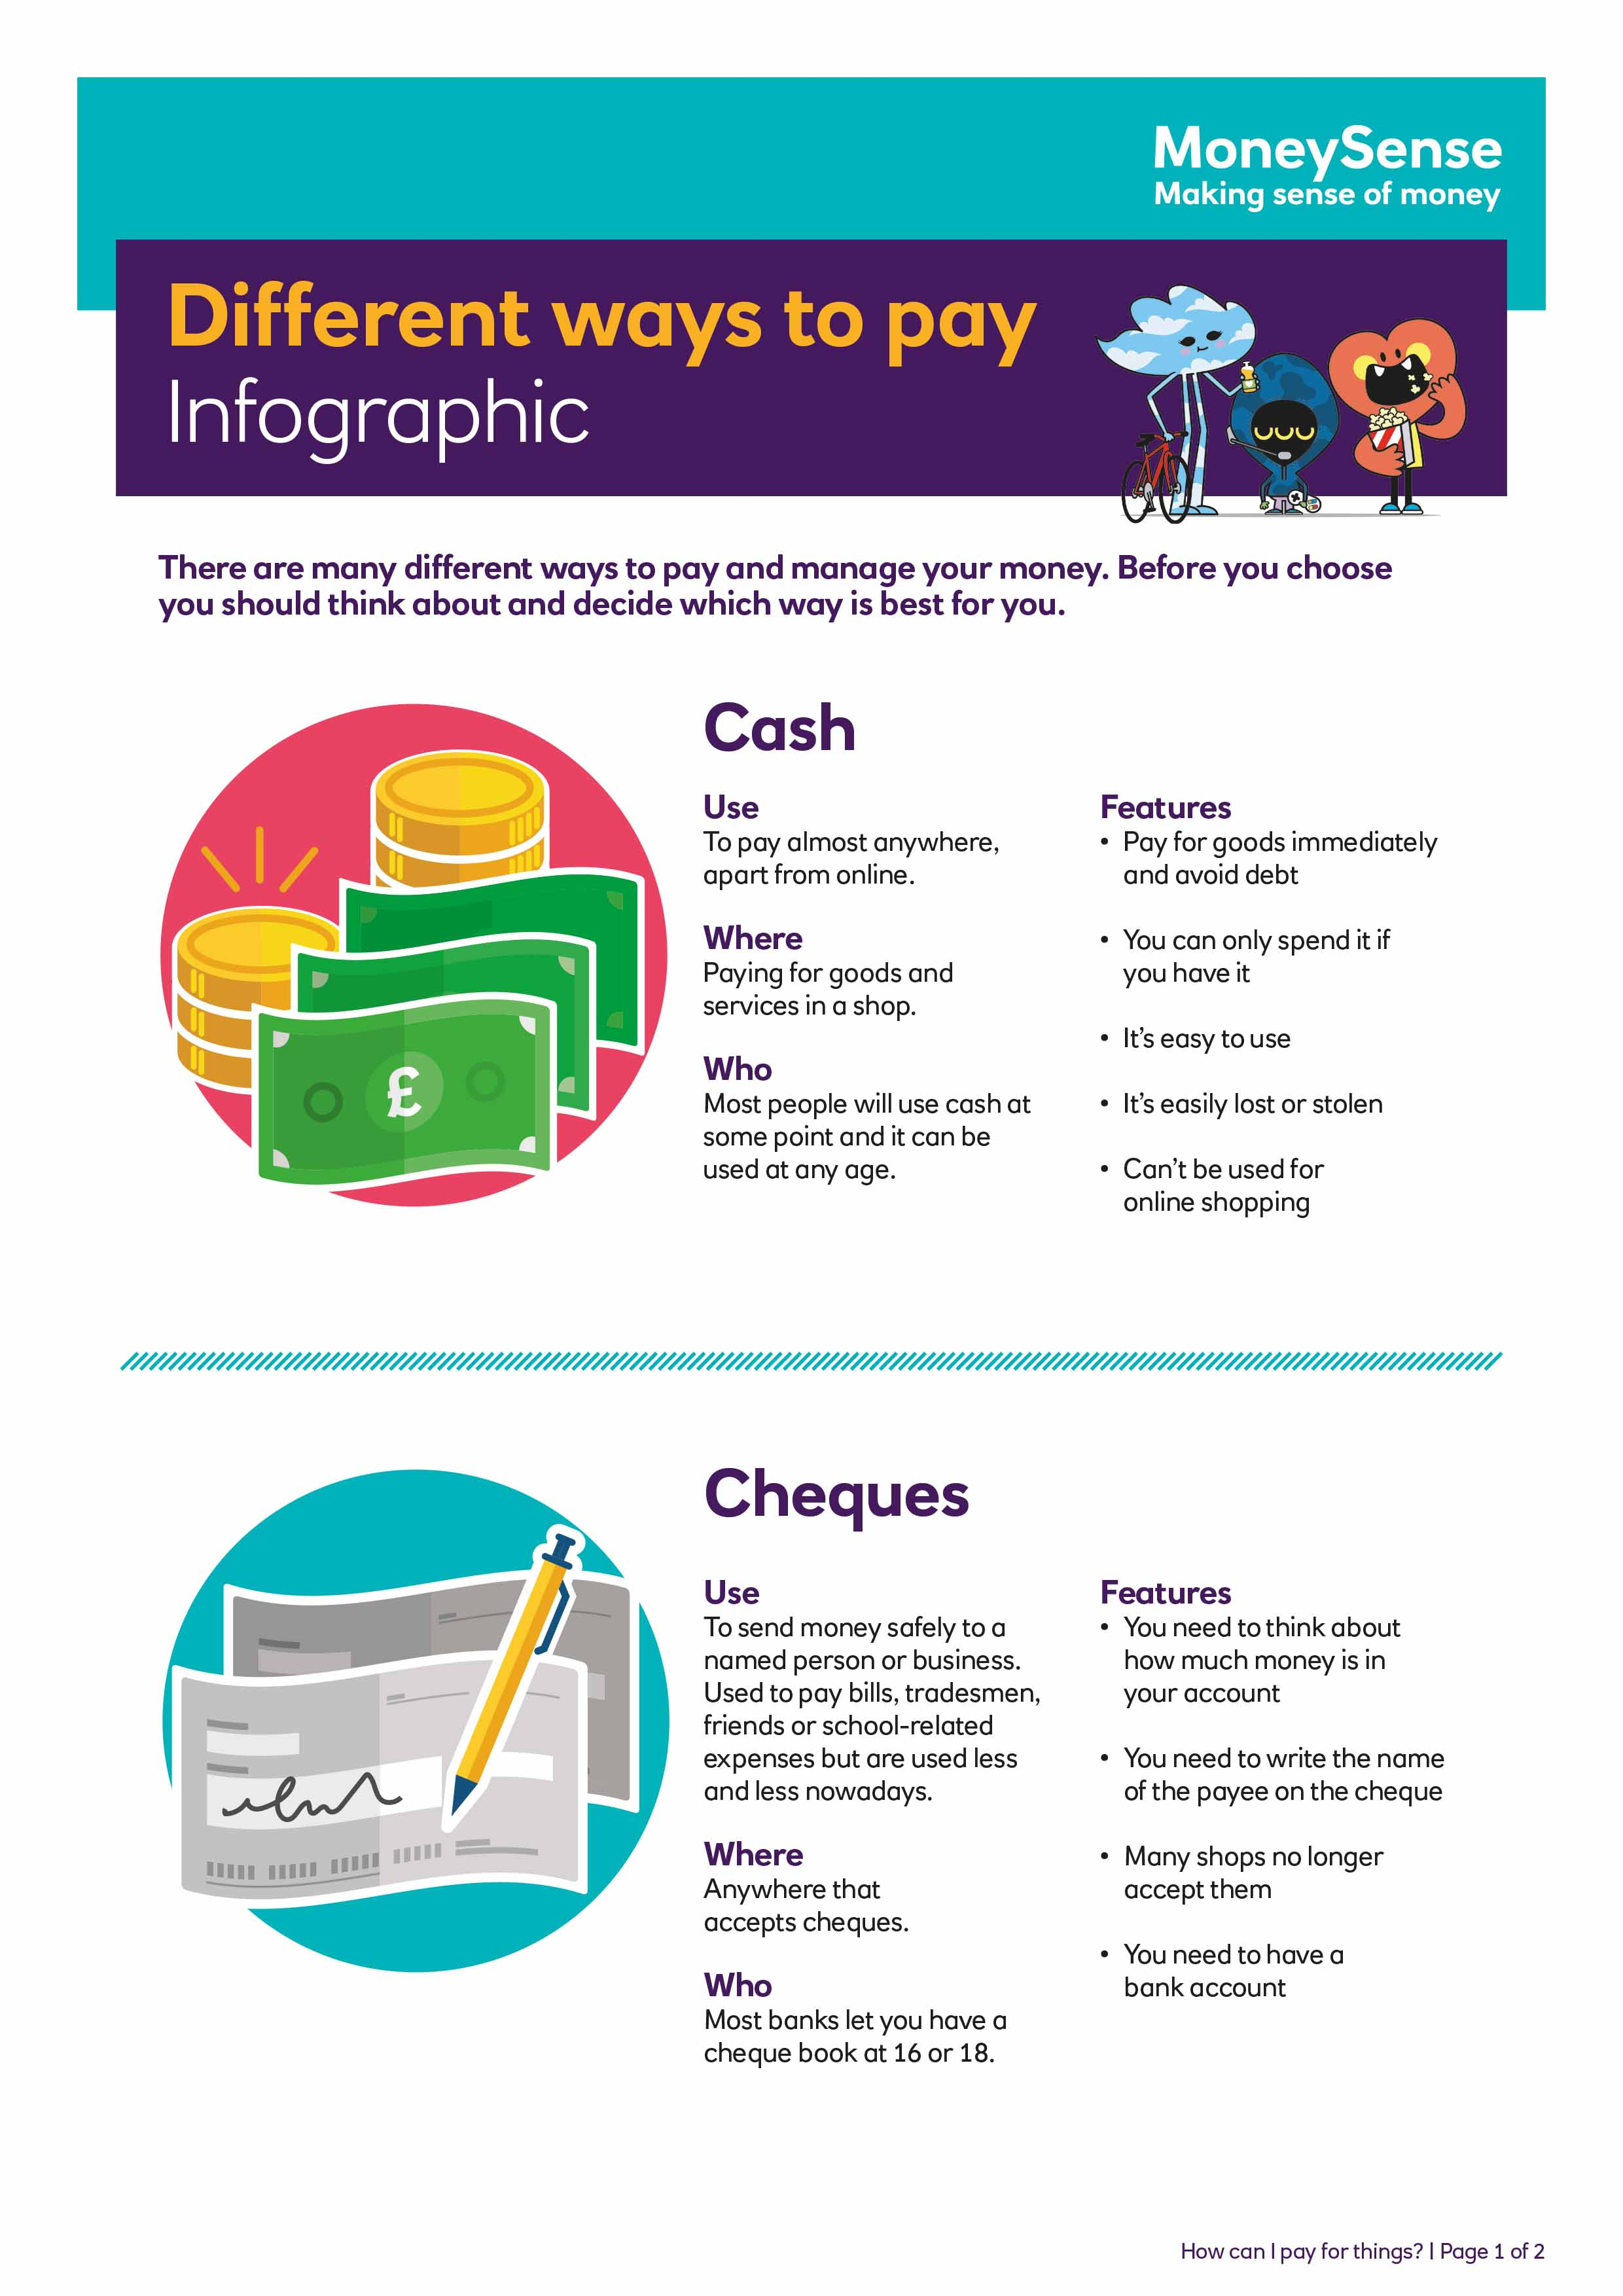 8_12_different_ways_to_pay_infographic_uk-1.jpg